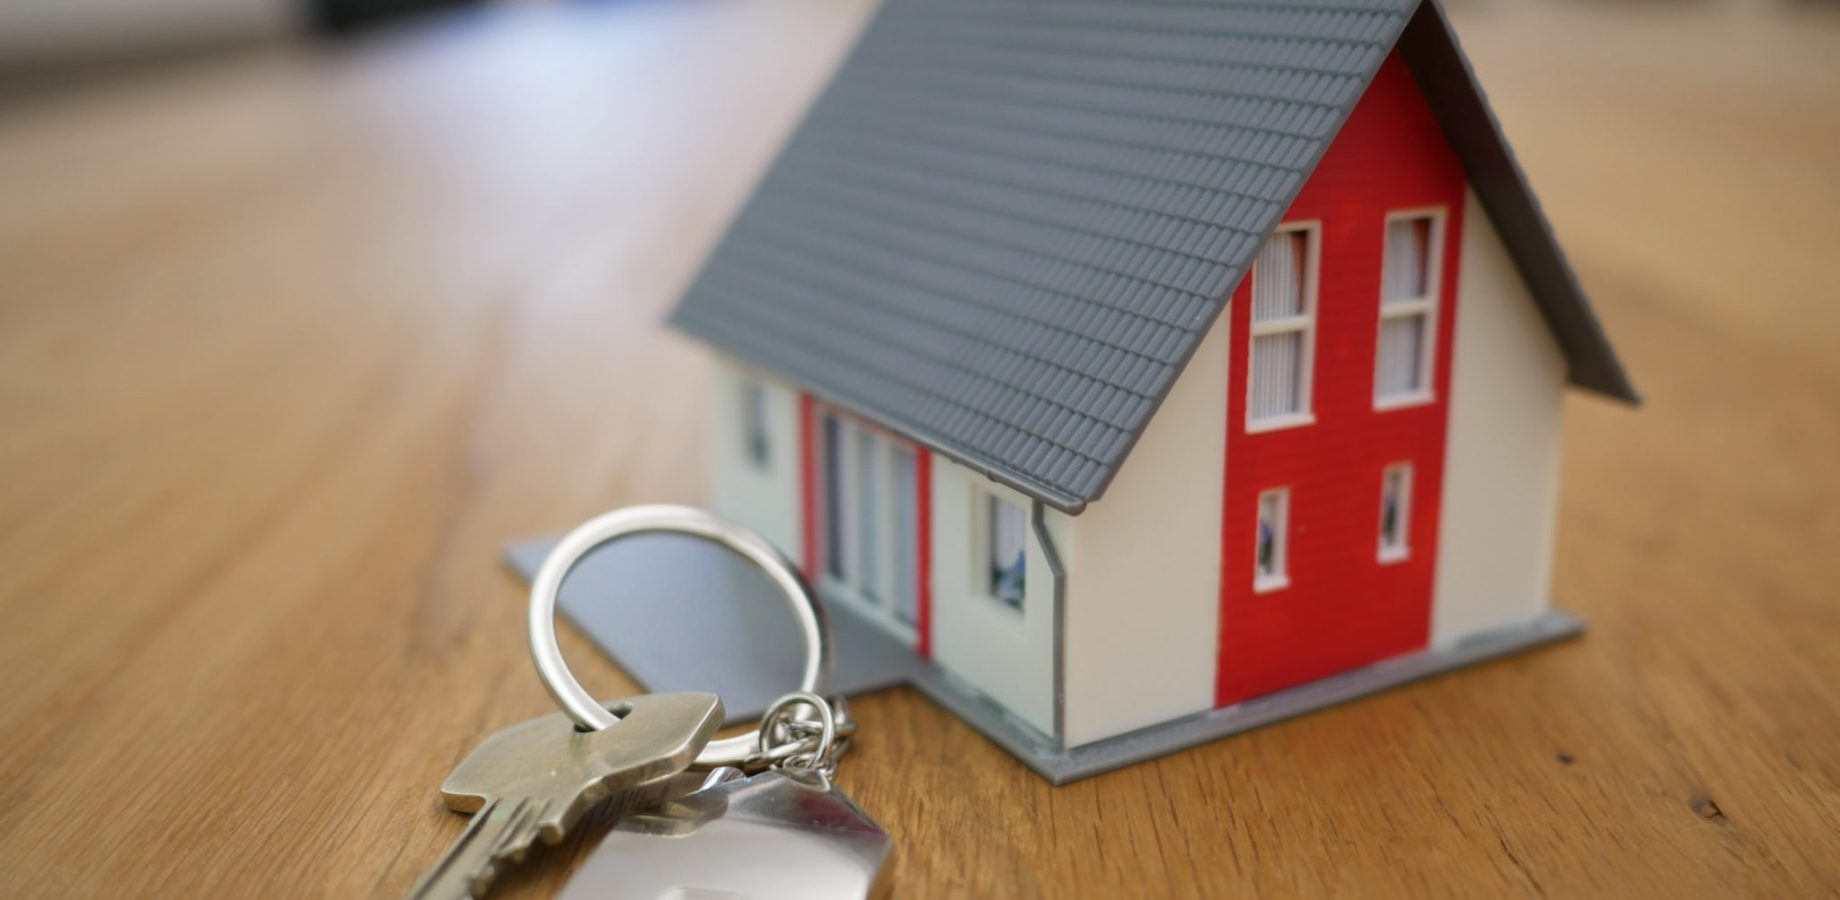 Should I Incorporate my Buy to Let Property Business?